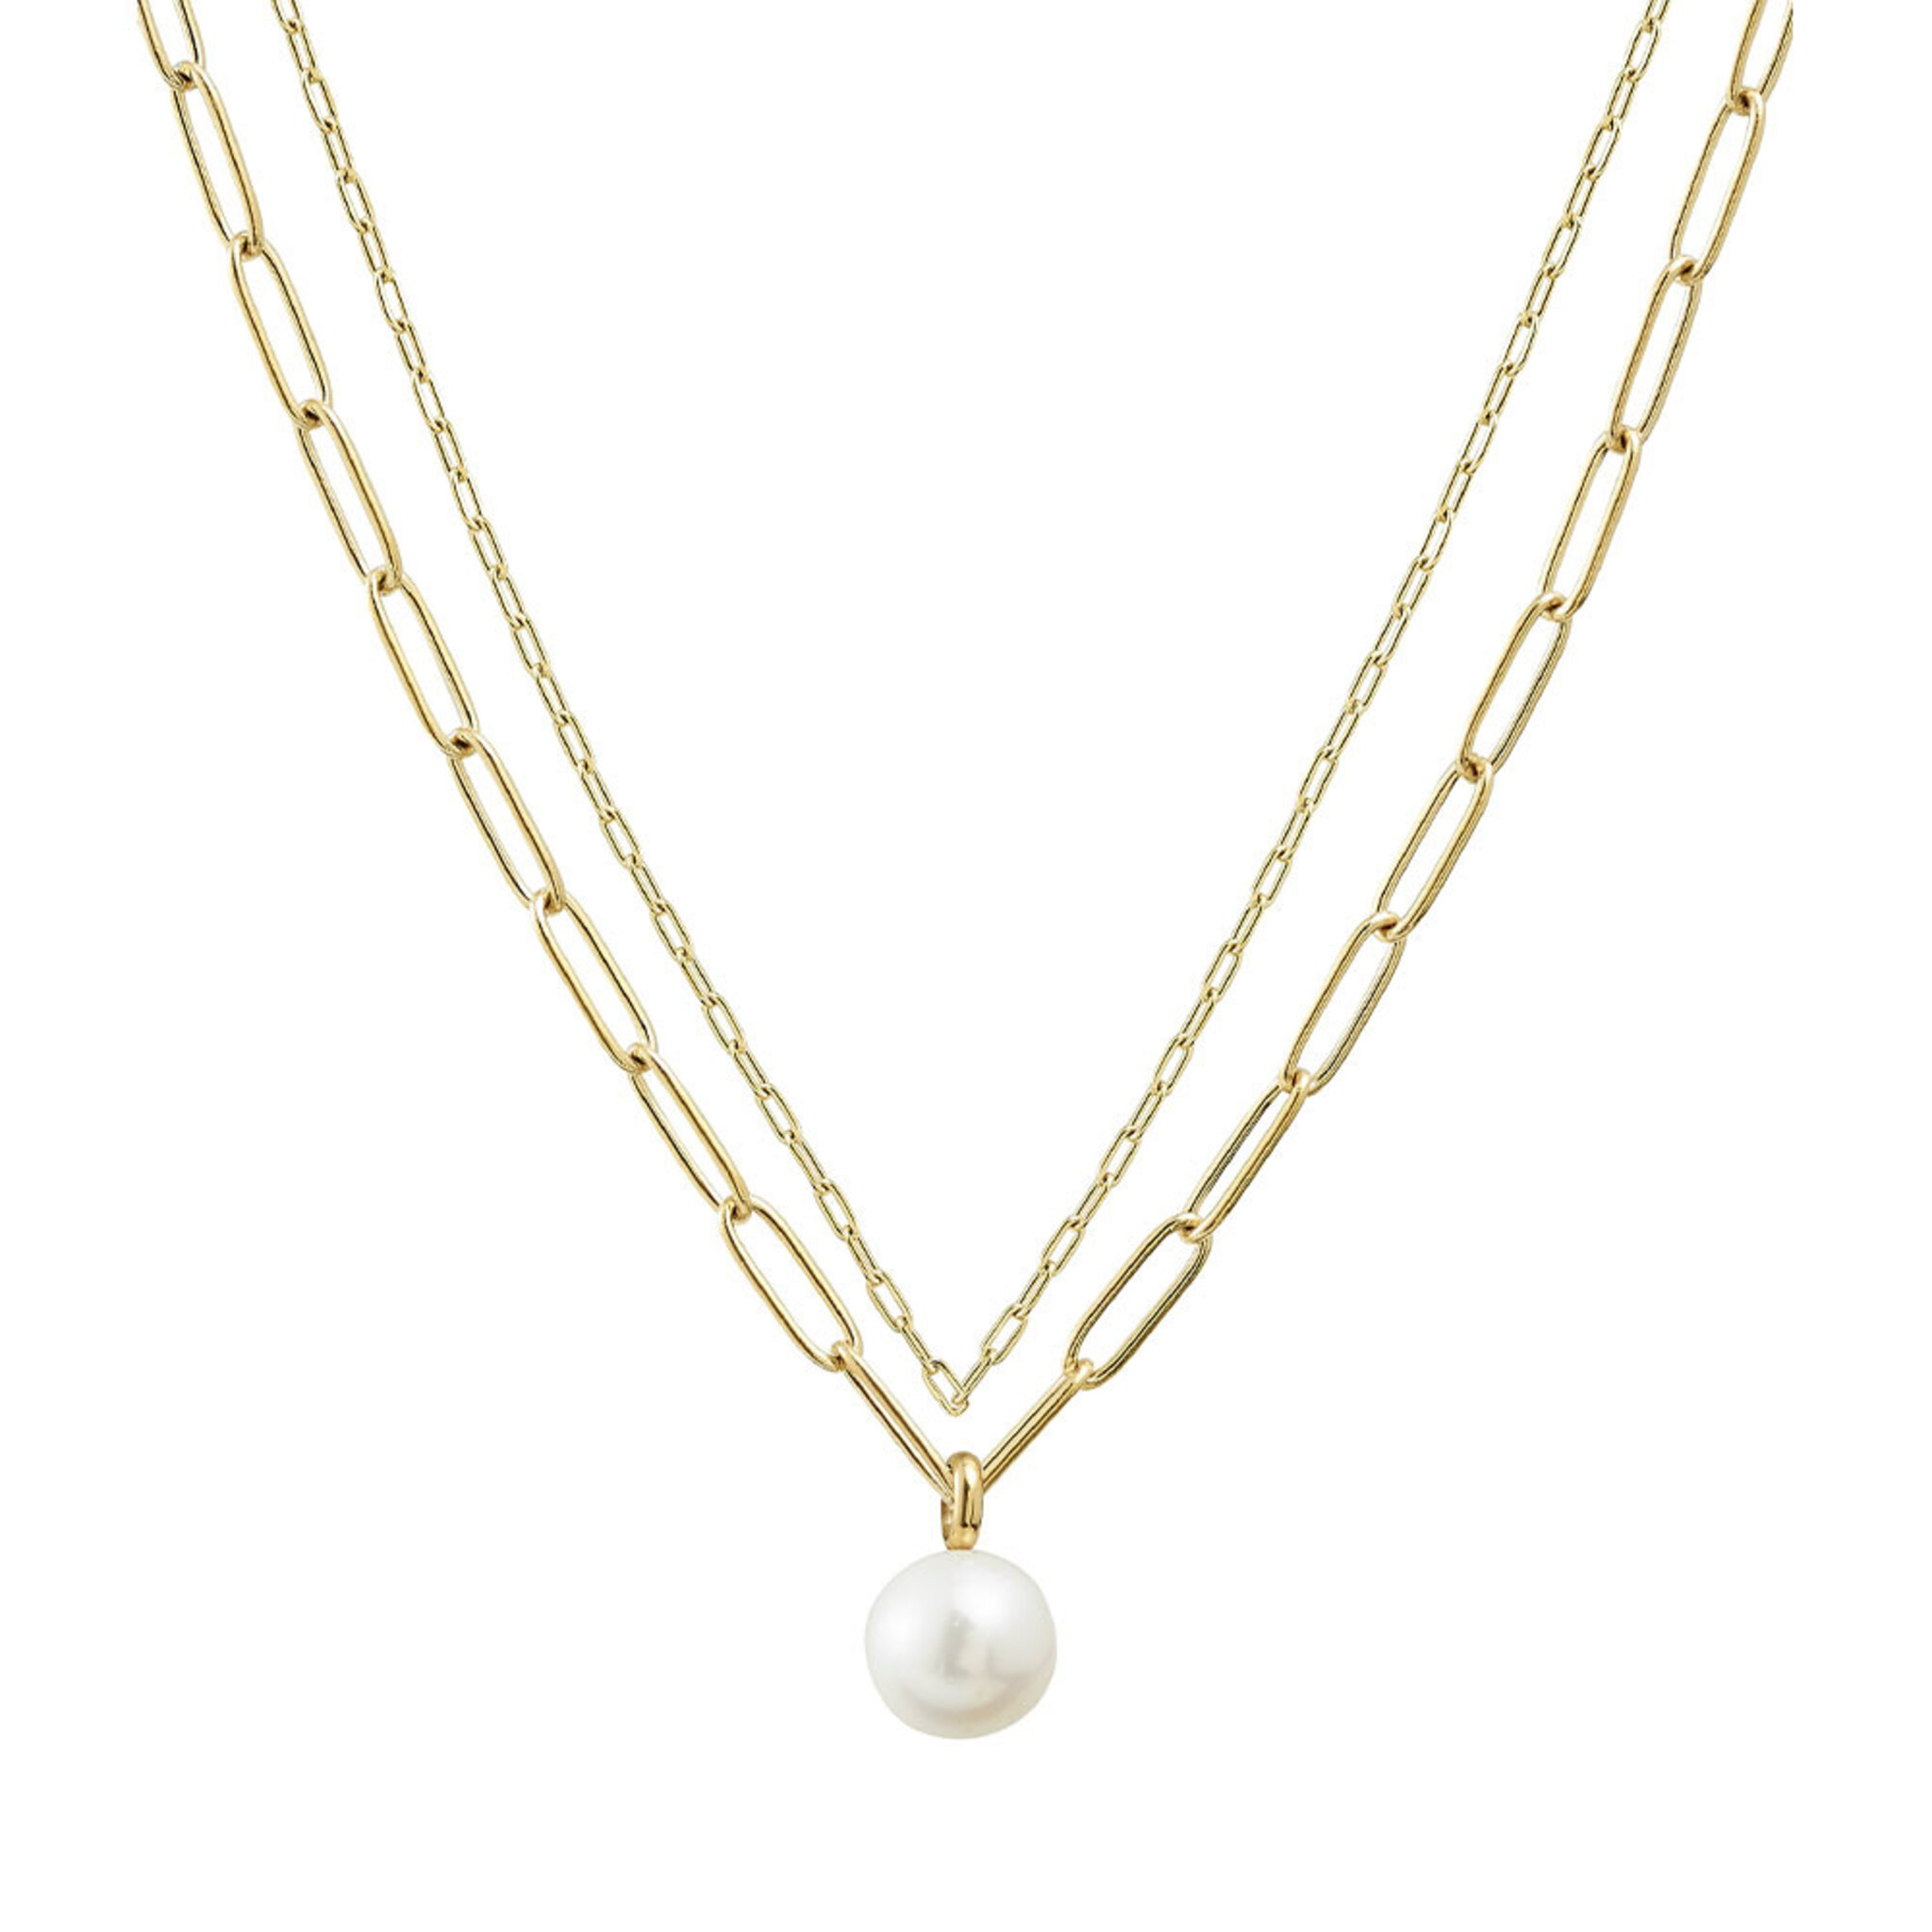 Berzelii Necklace Layered Gold Necklace, ONE SIZE